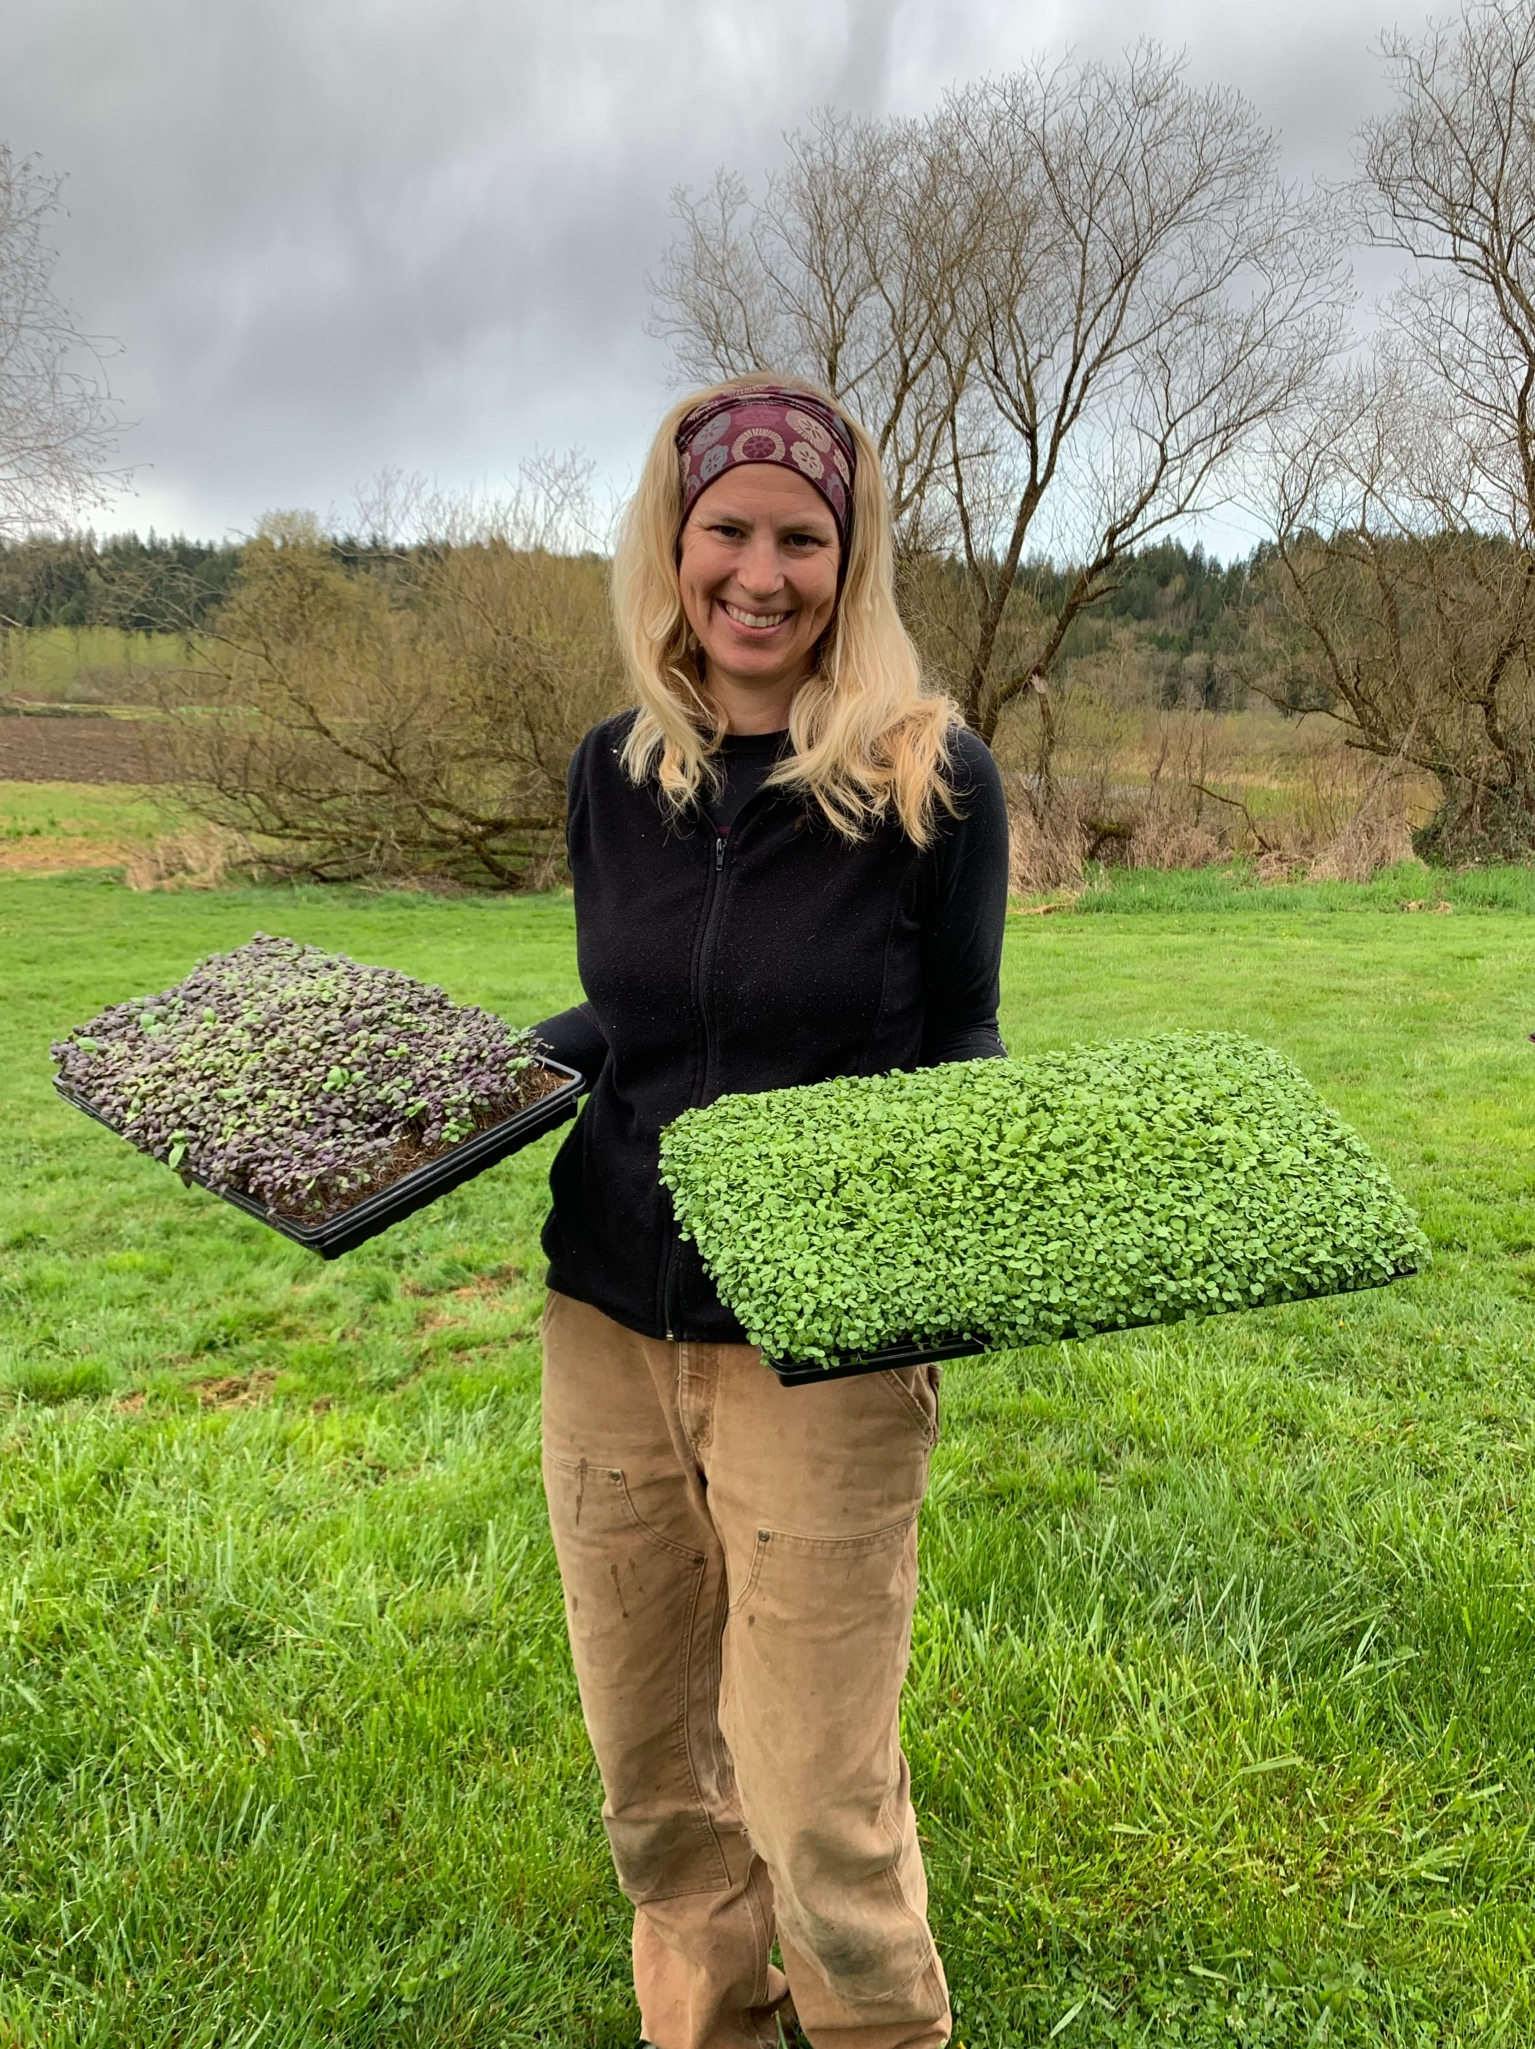 Hand-Grown Greens owner with microgreen trays